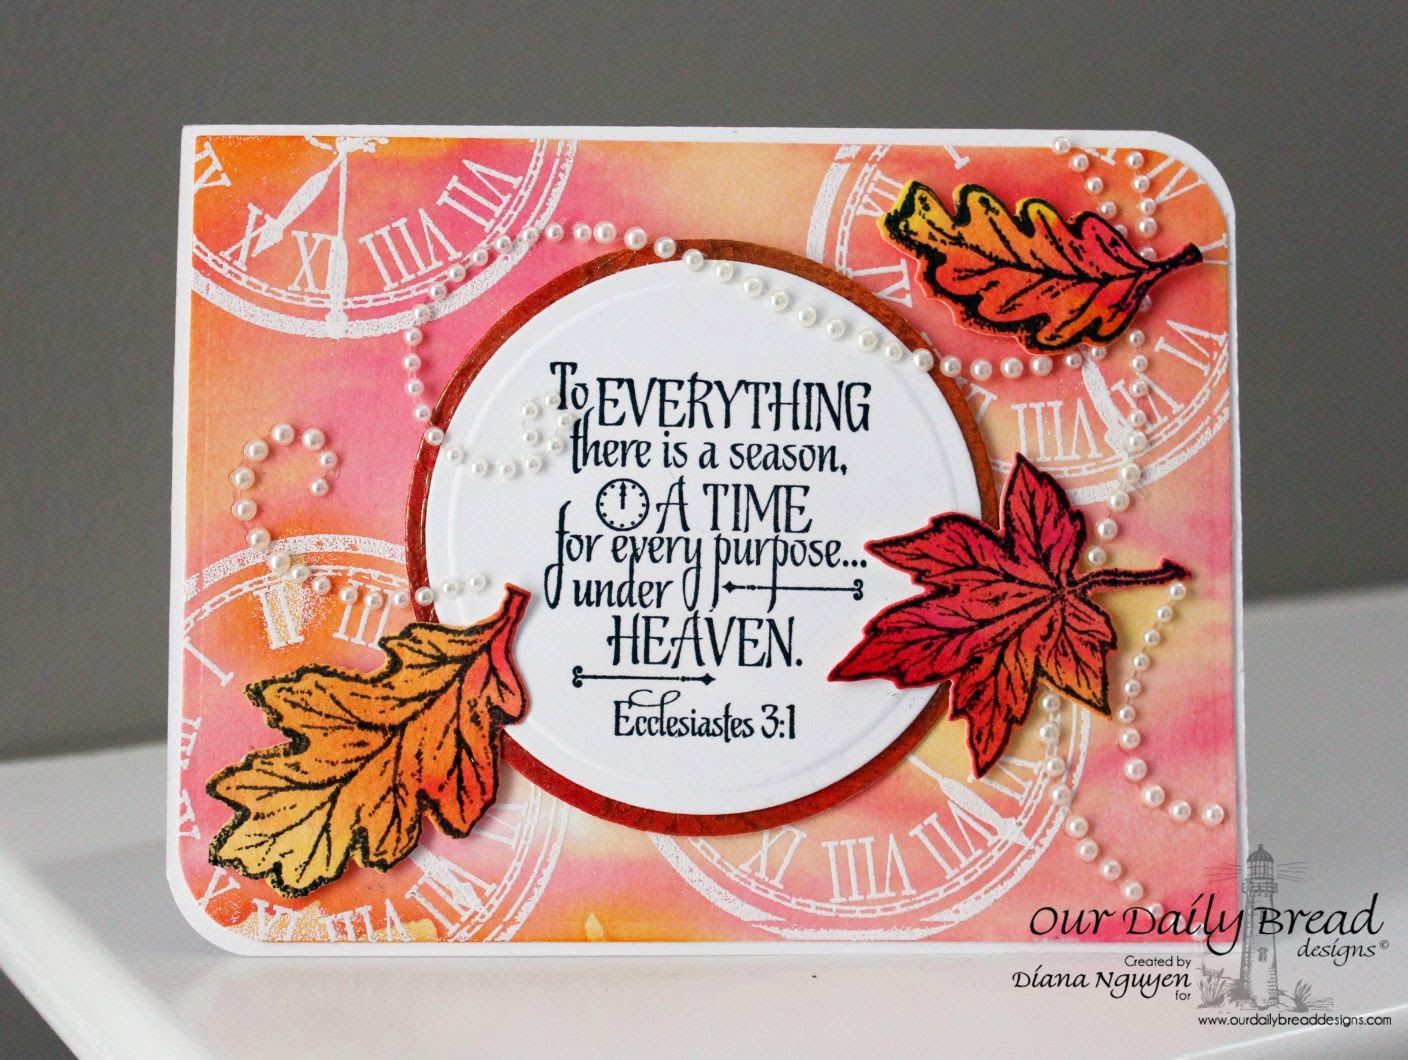 Diana Nguyen, Our Daily Bread Designs, Scripture, Ecclesiastes 3:1